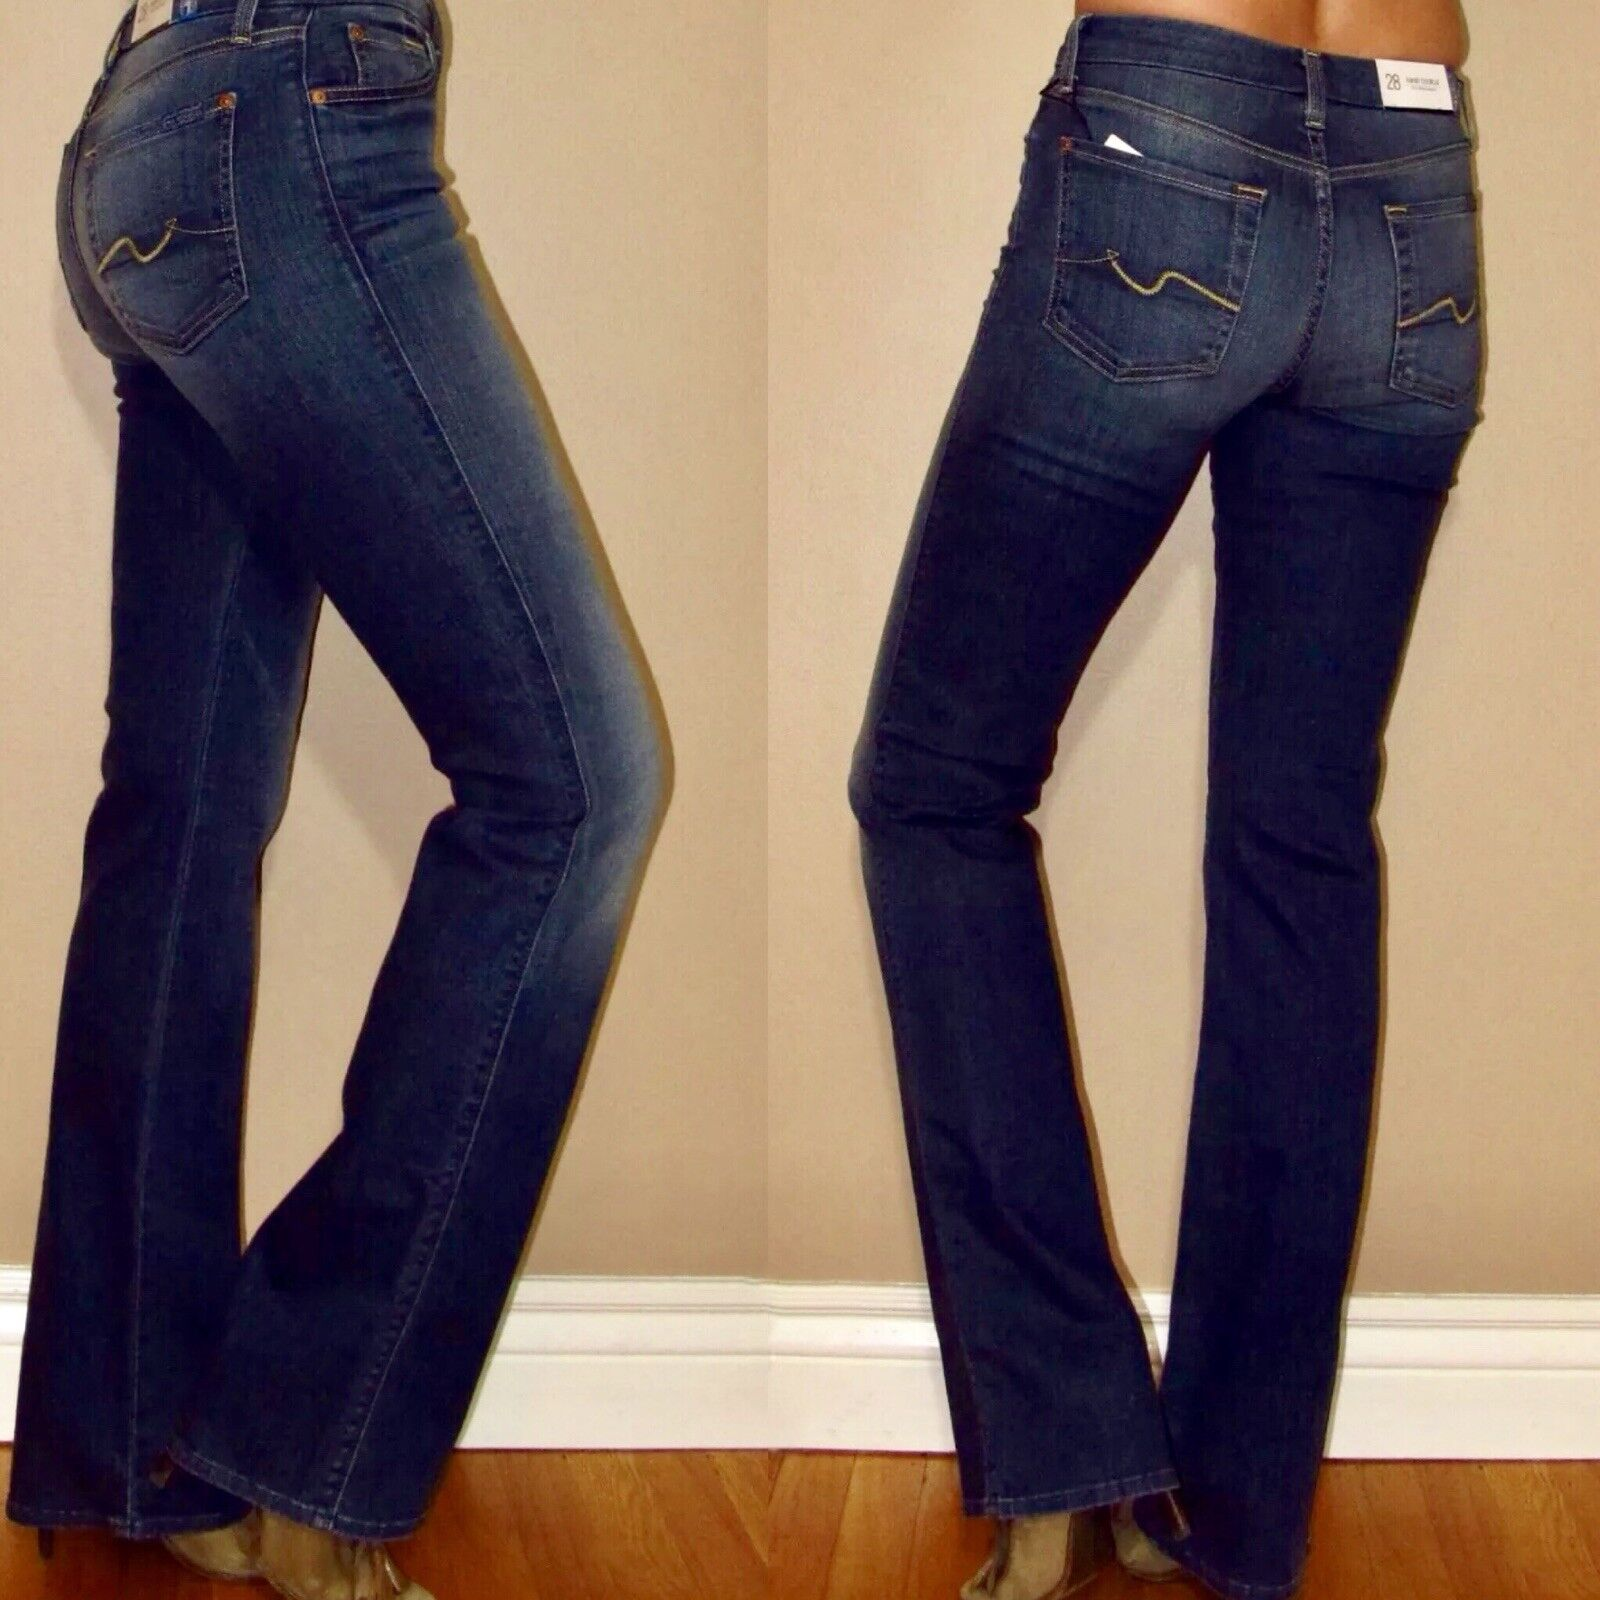 7 For All Mankind Karah Fitted Bootcut High Waist Jeans Medium Wash 24-27